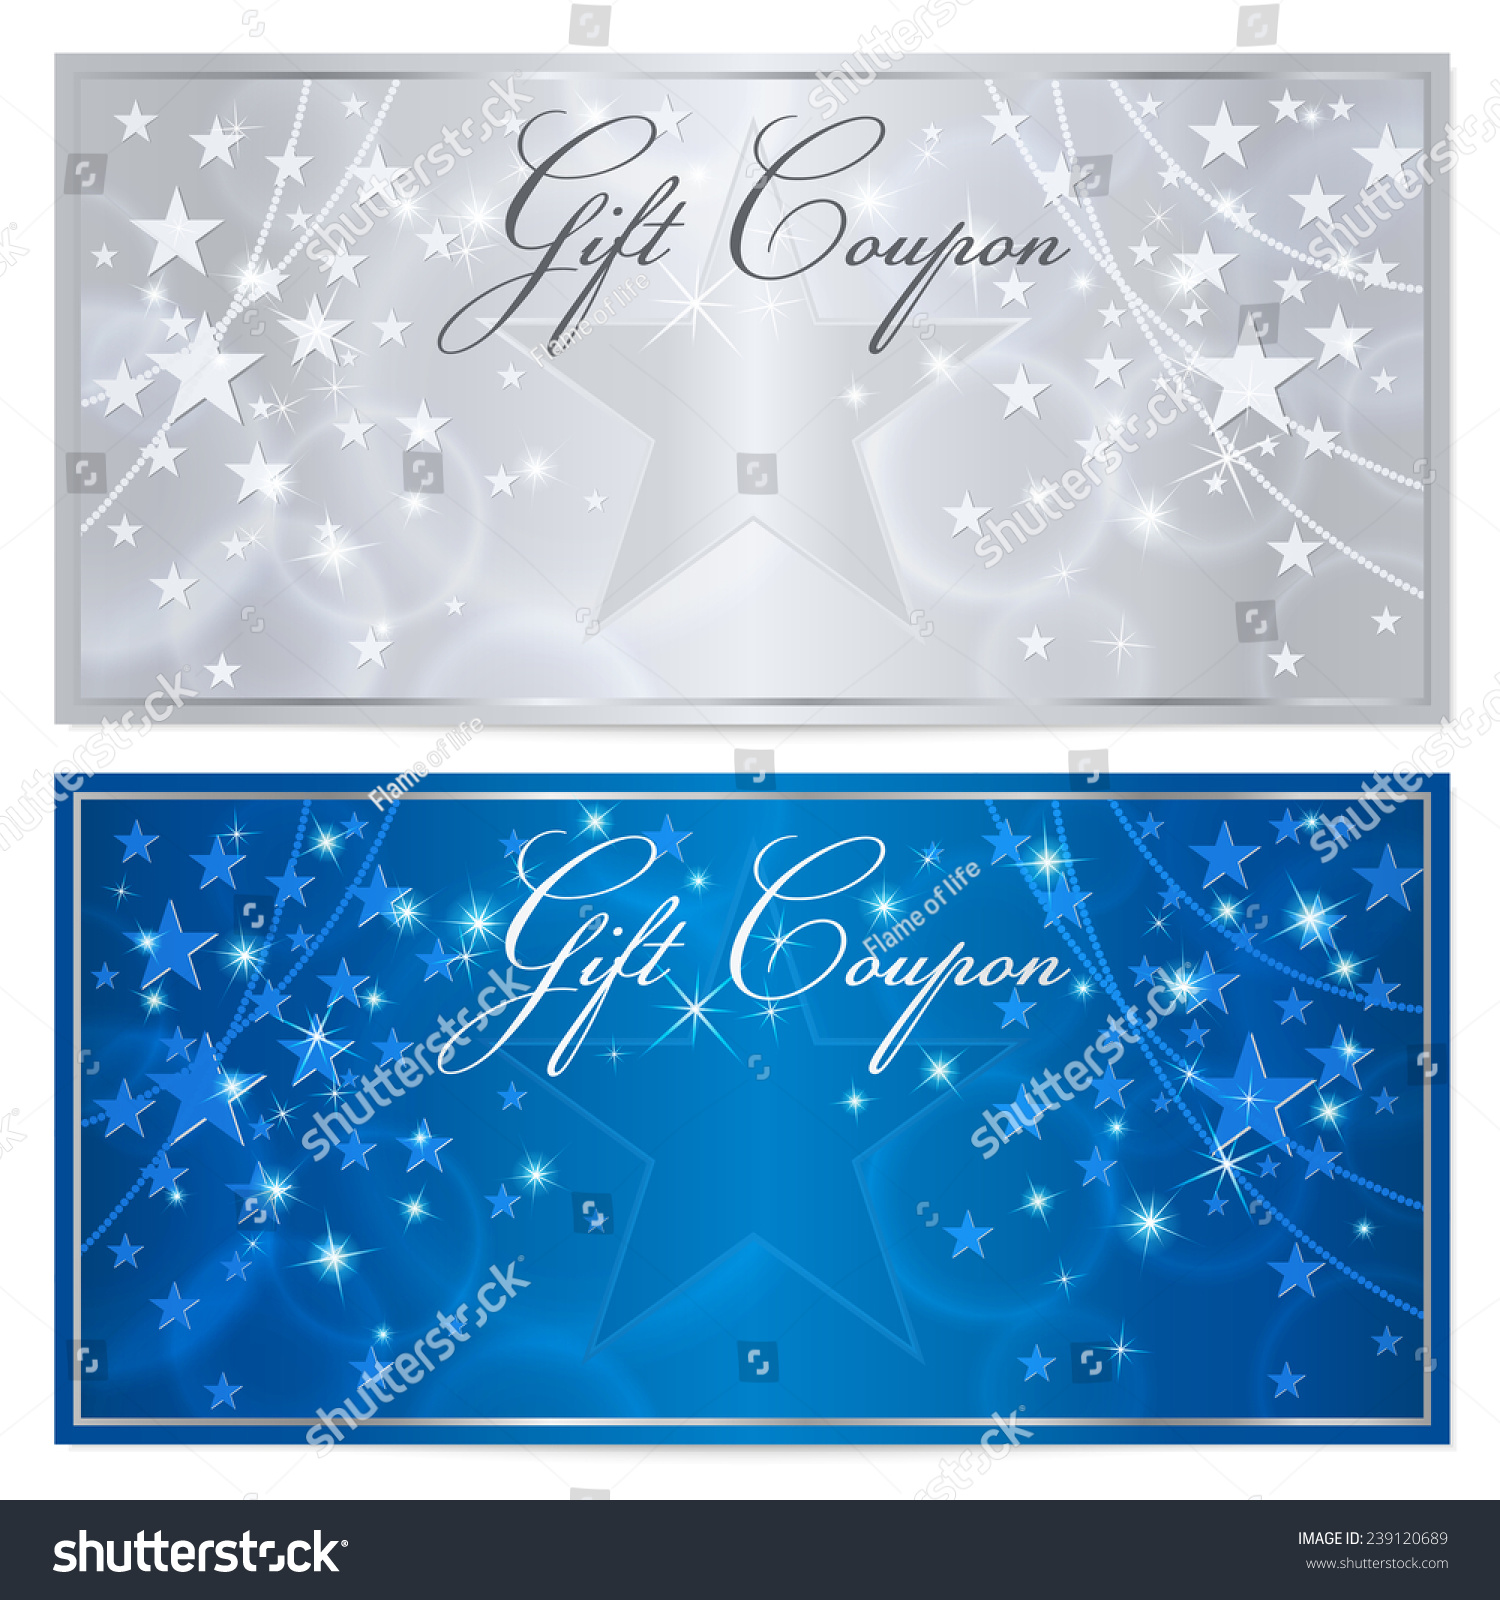 gift certificate voucher coupon template stars stock illustration gift certificate voucher coupon template stars pattern holiday silver and blue background